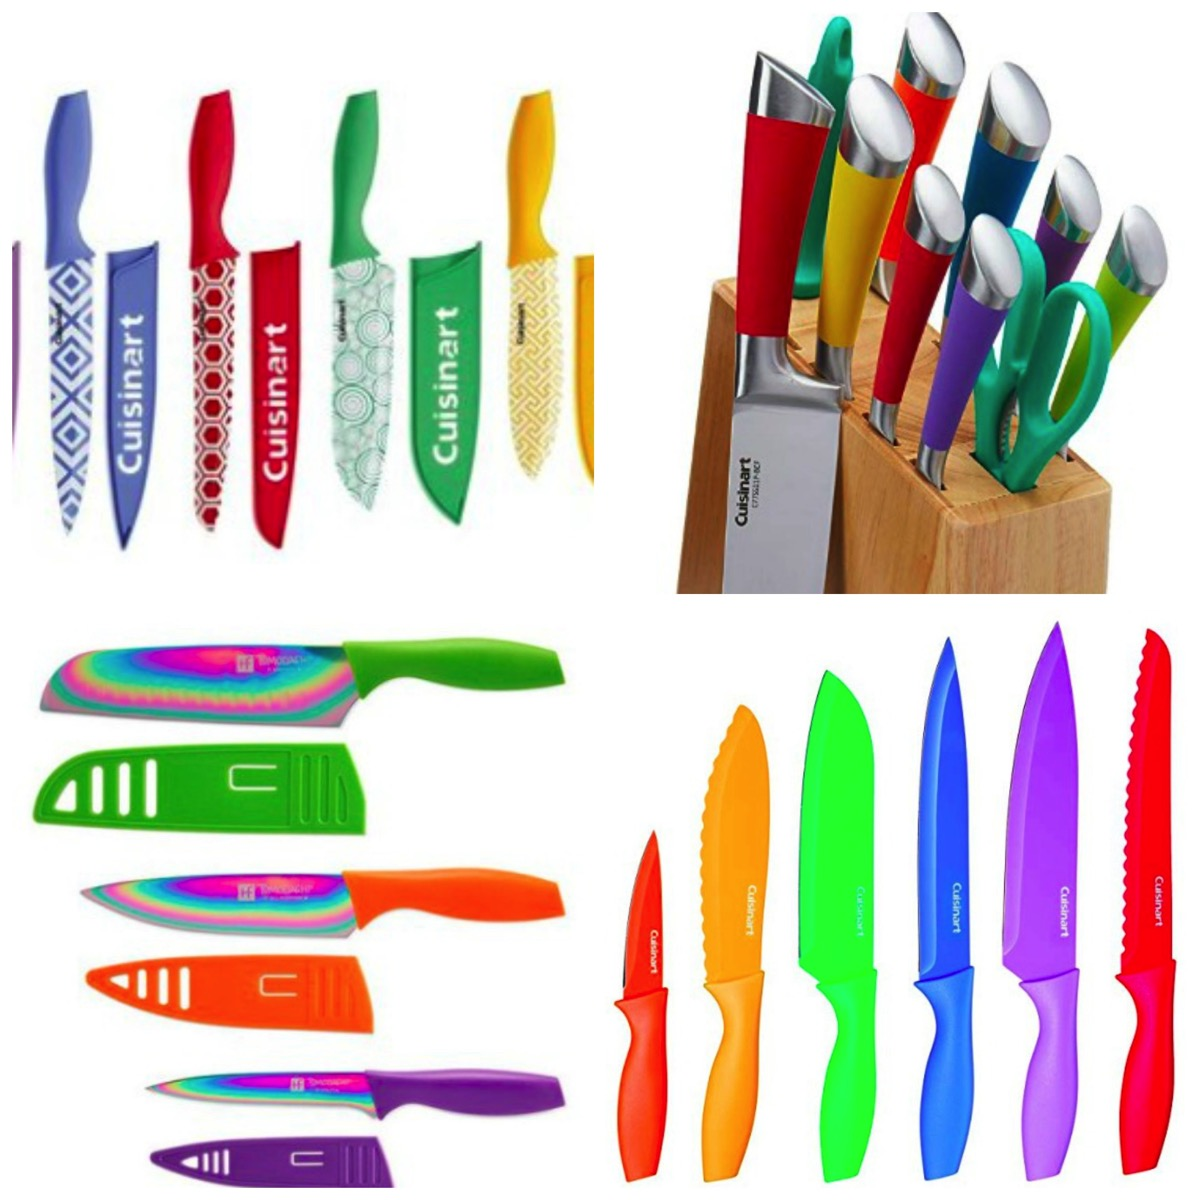 Rainbow colored kitchen knife kits colorful kitchen knives